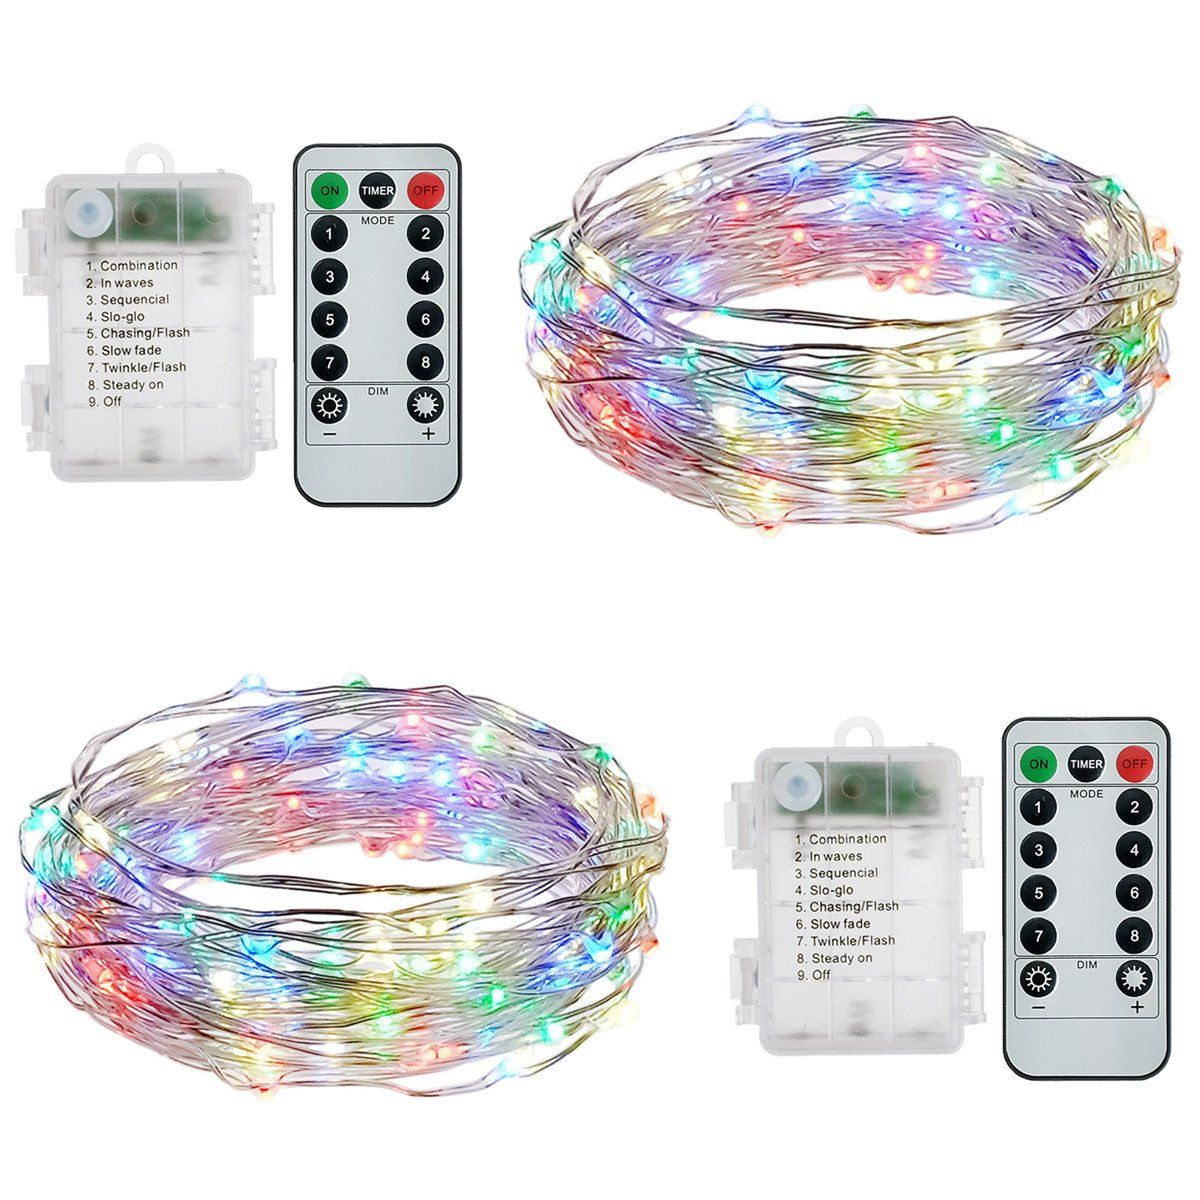 hsicily battery operated string lights waterproof 8 modes 50 led fairy lights remote control for wedding halloween christmas party bedroom indoor outdoor